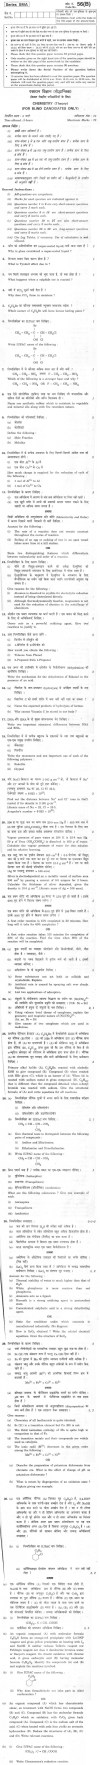 CBSE Class XII Previous Year Question Paper 2012 Chemistry for Blind Candidates